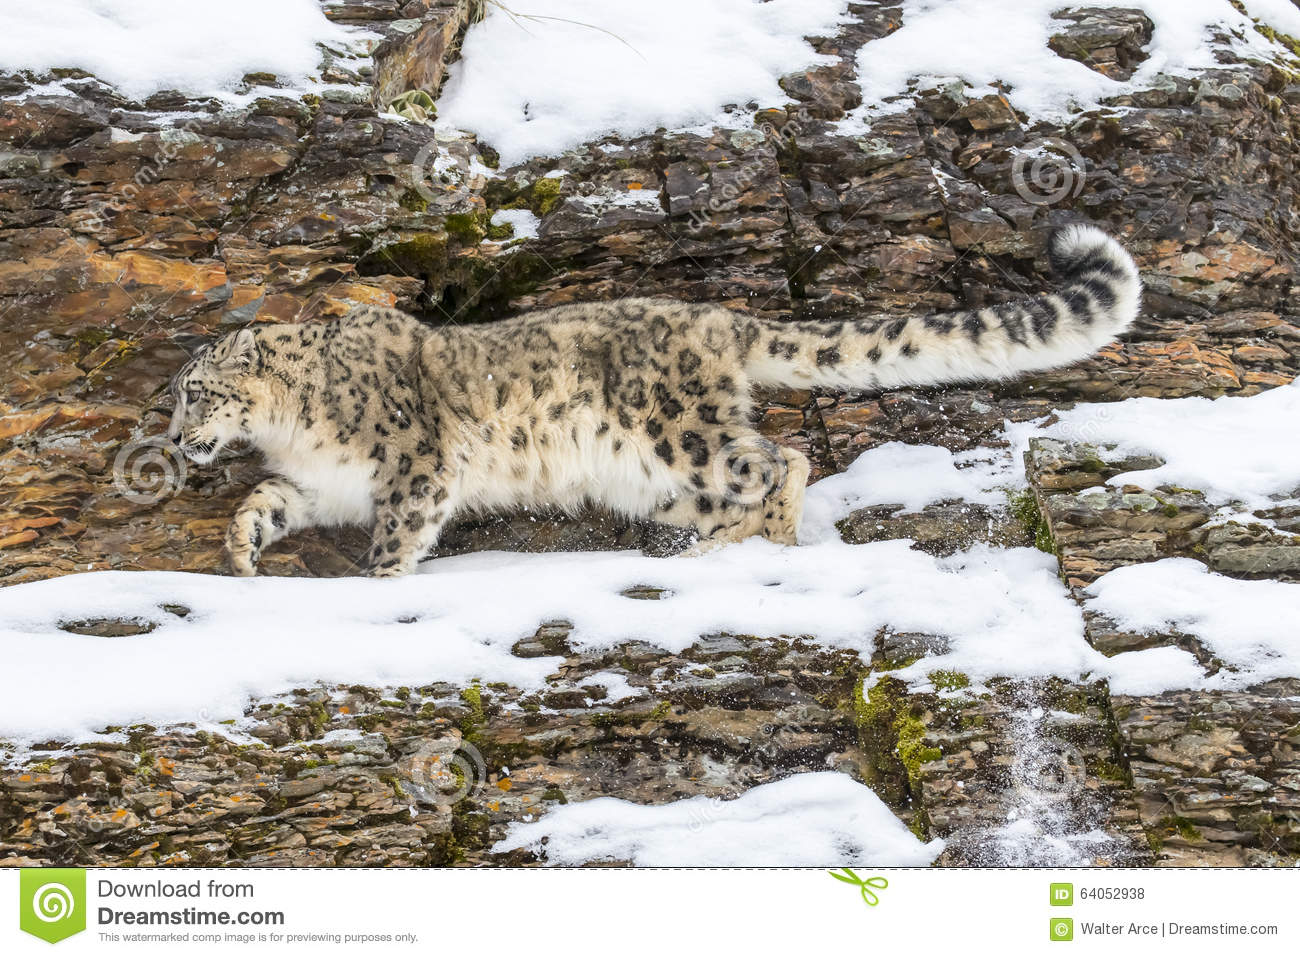 Snow leopard hunting prey - photo#14